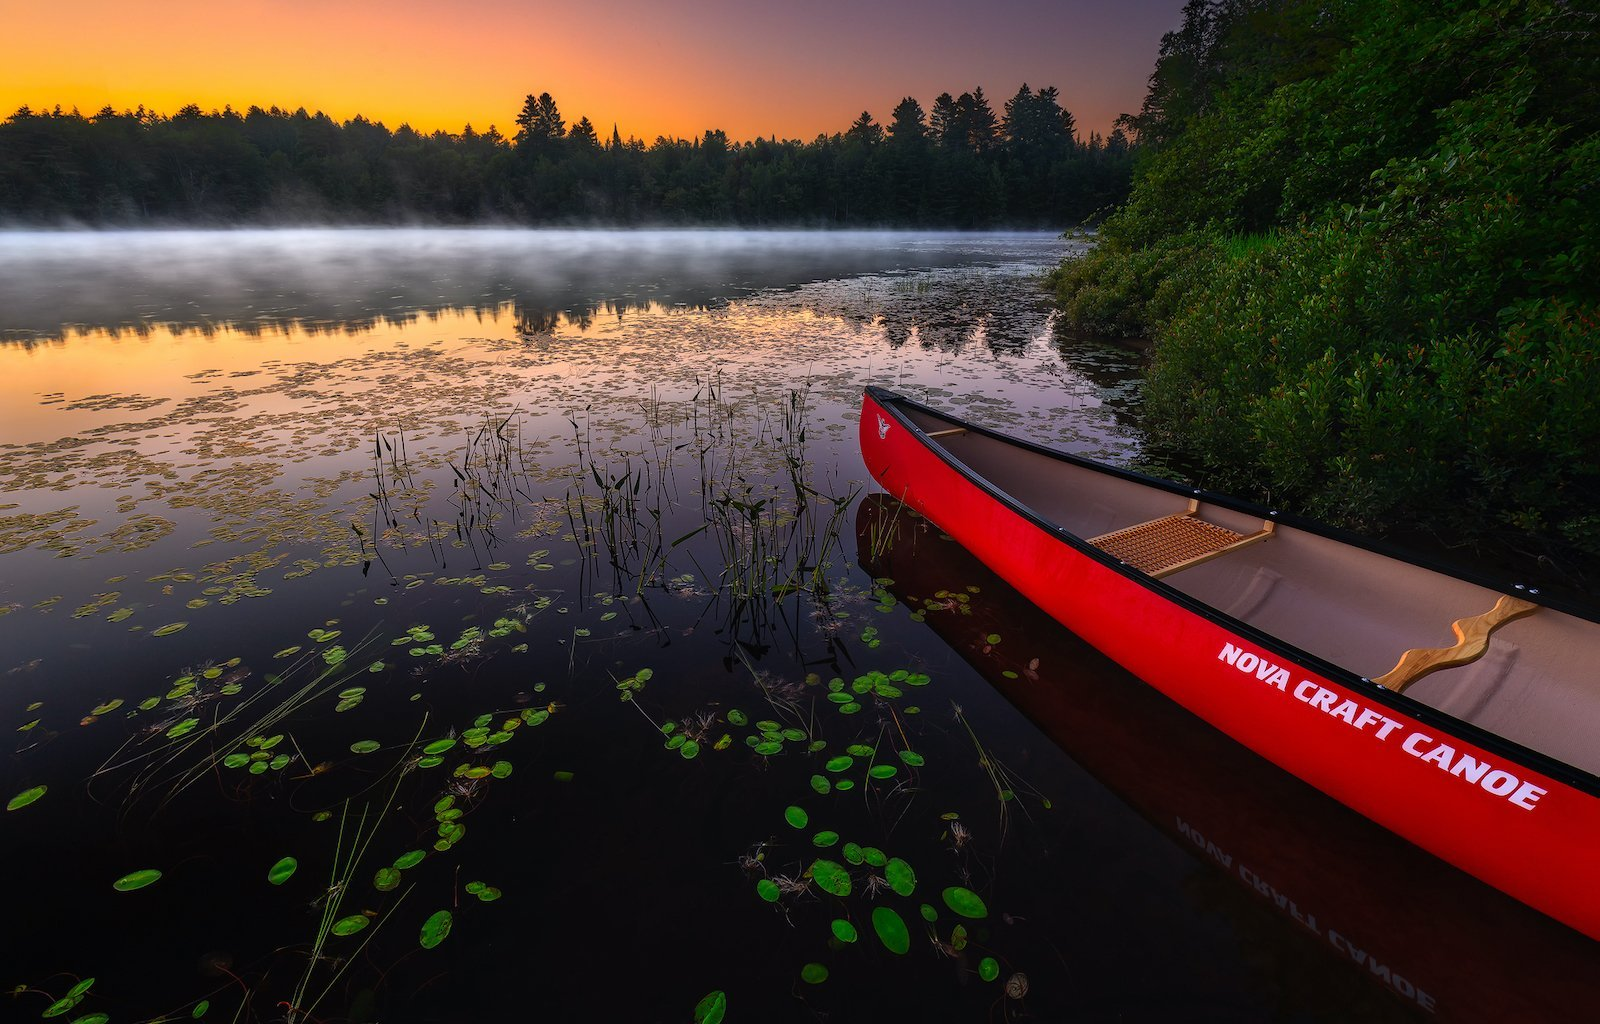 Special Indeed - Summer Canoeing & Photographing the ADKs